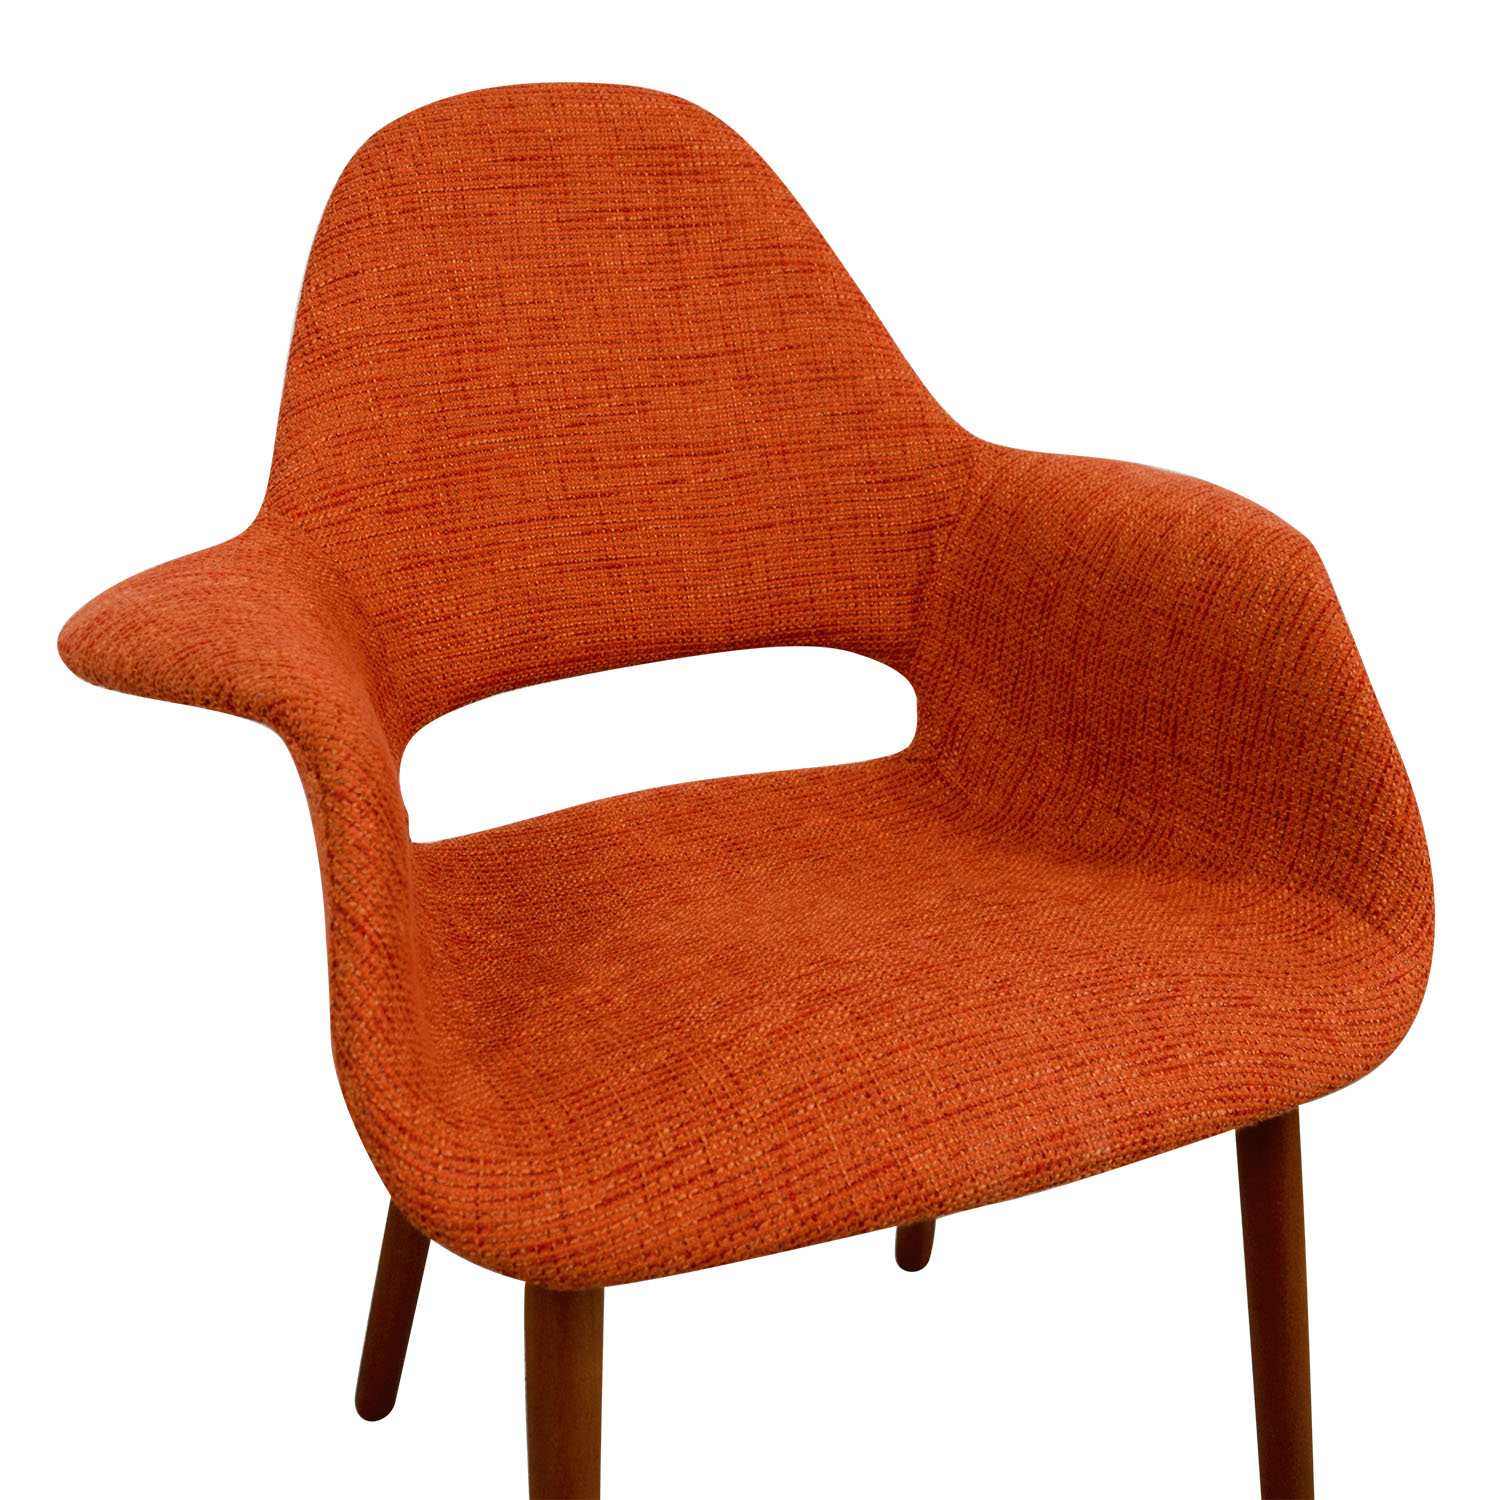 Artrio Artrio Orange Upholstered Armchair Accent Chairs